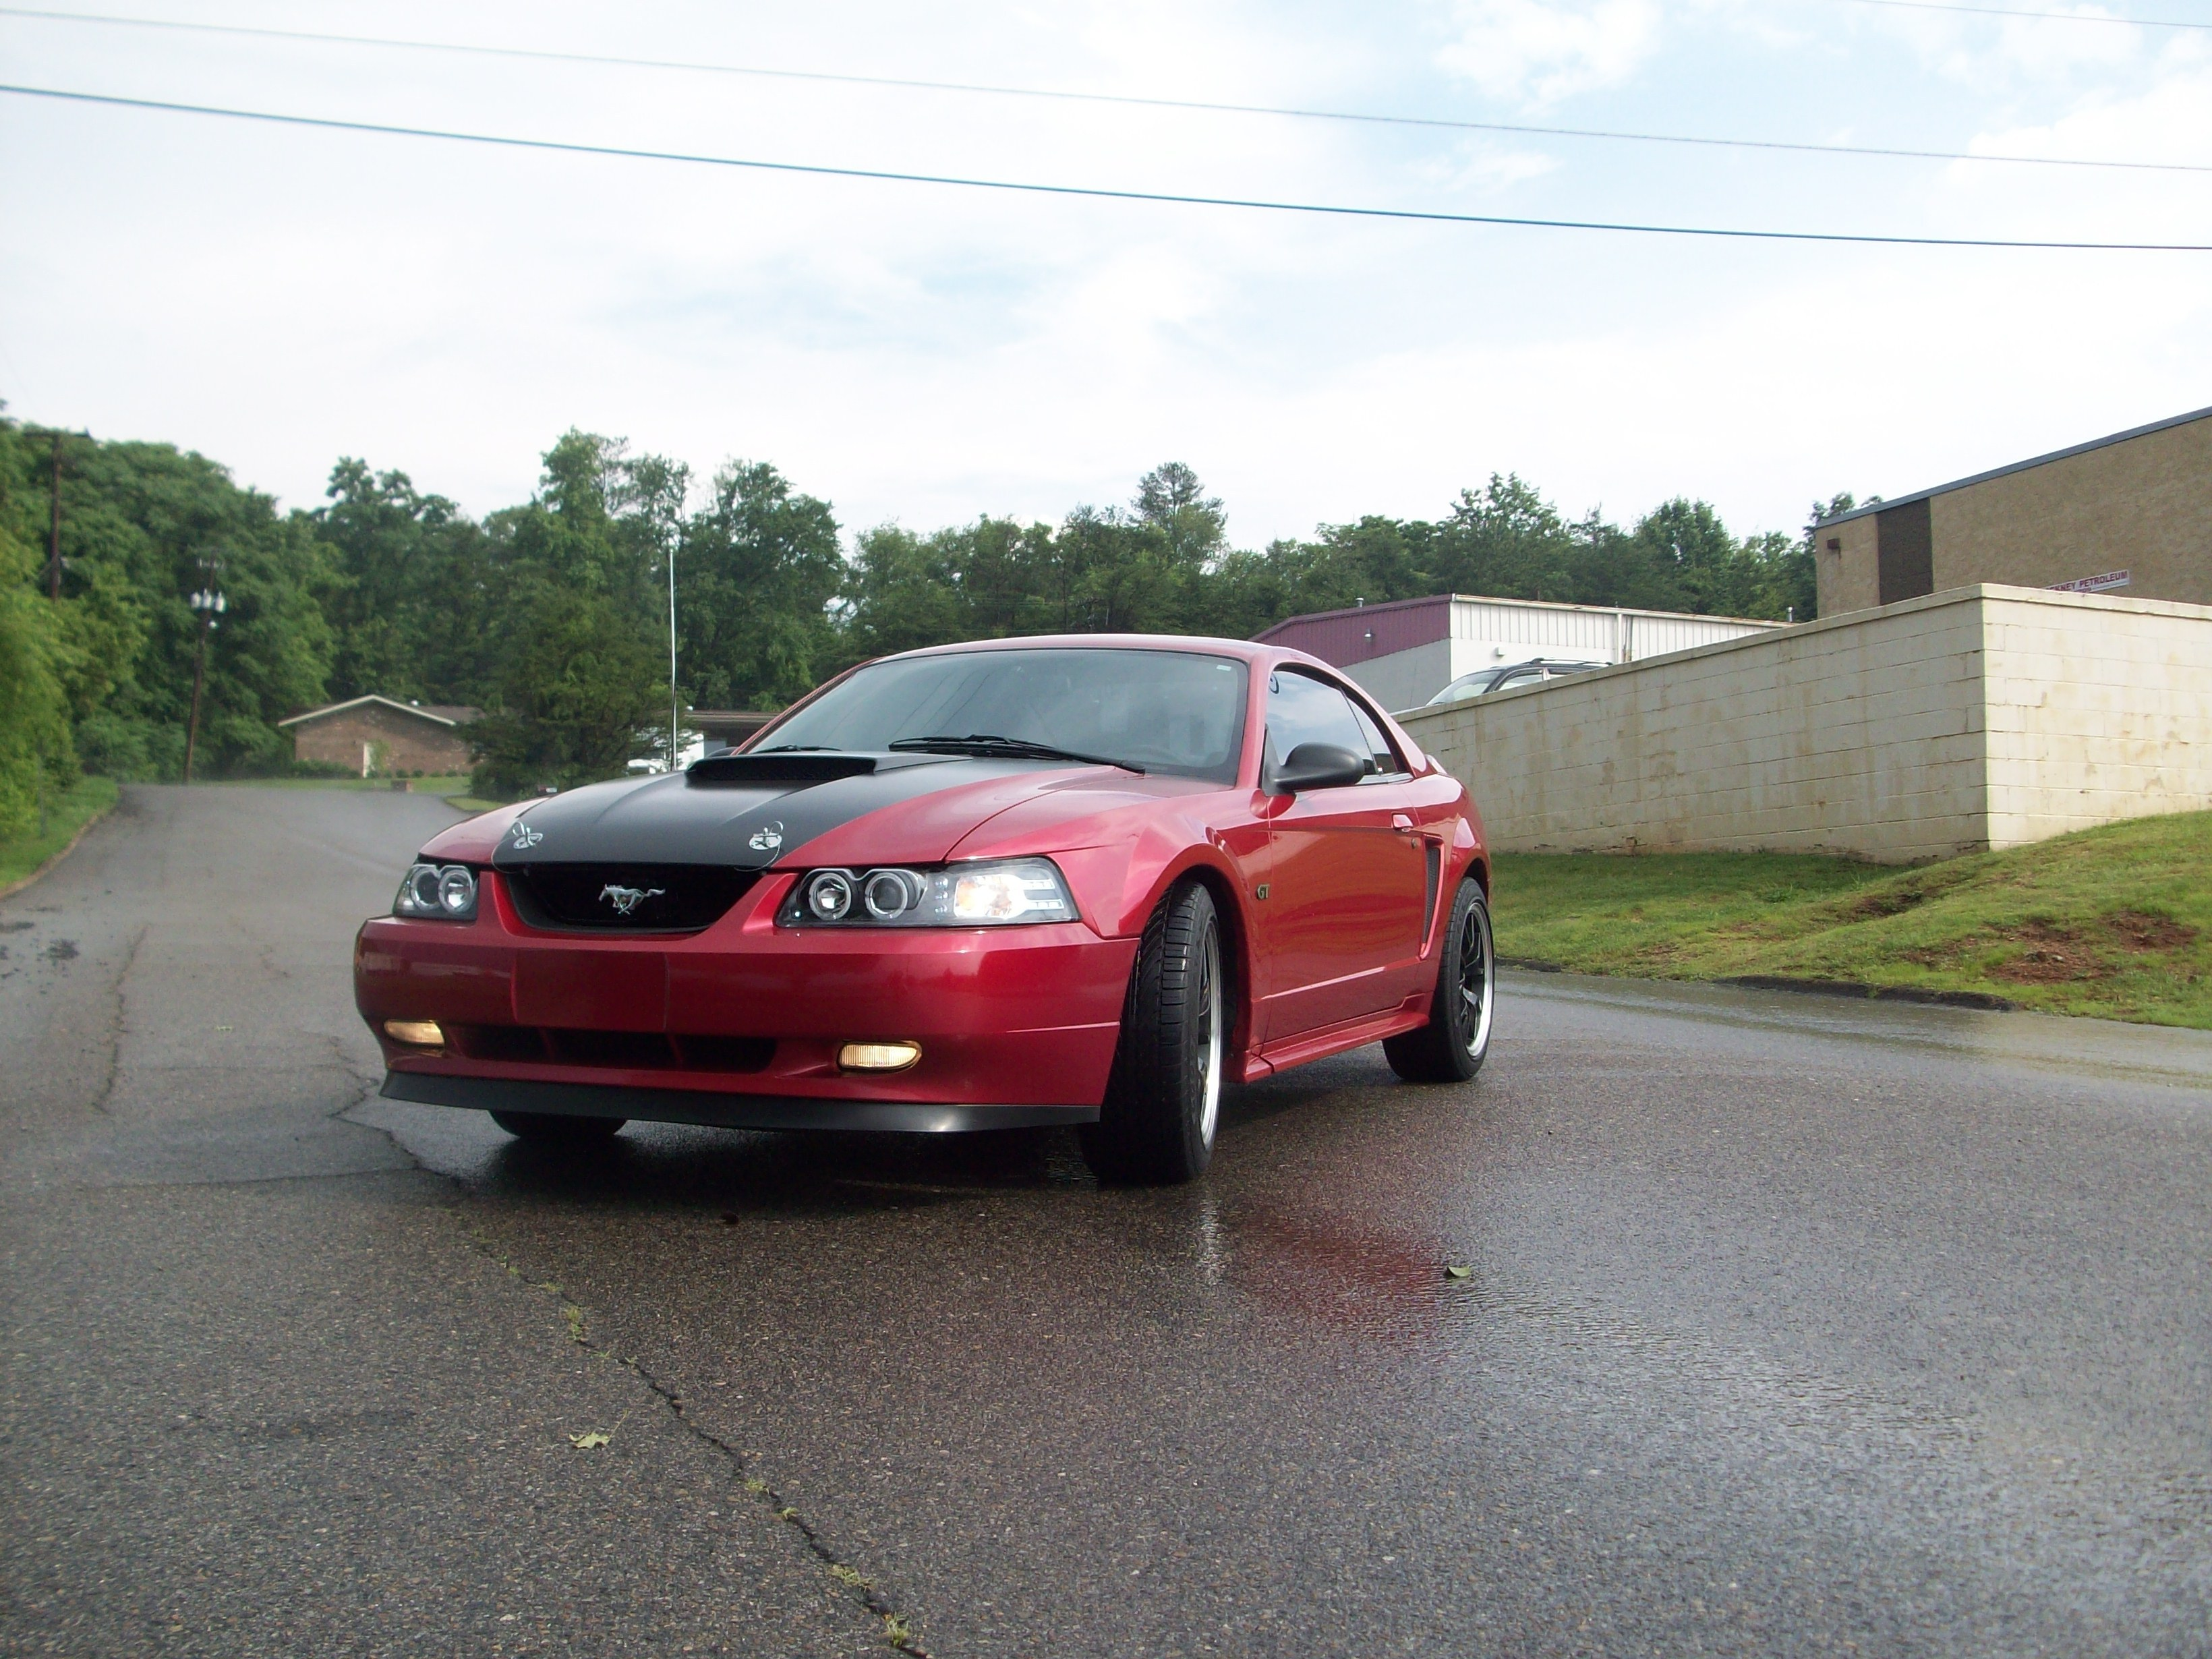 acorn roxy 2000 ford mustang specs photos modification info at cardomain. Black Bedroom Furniture Sets. Home Design Ideas